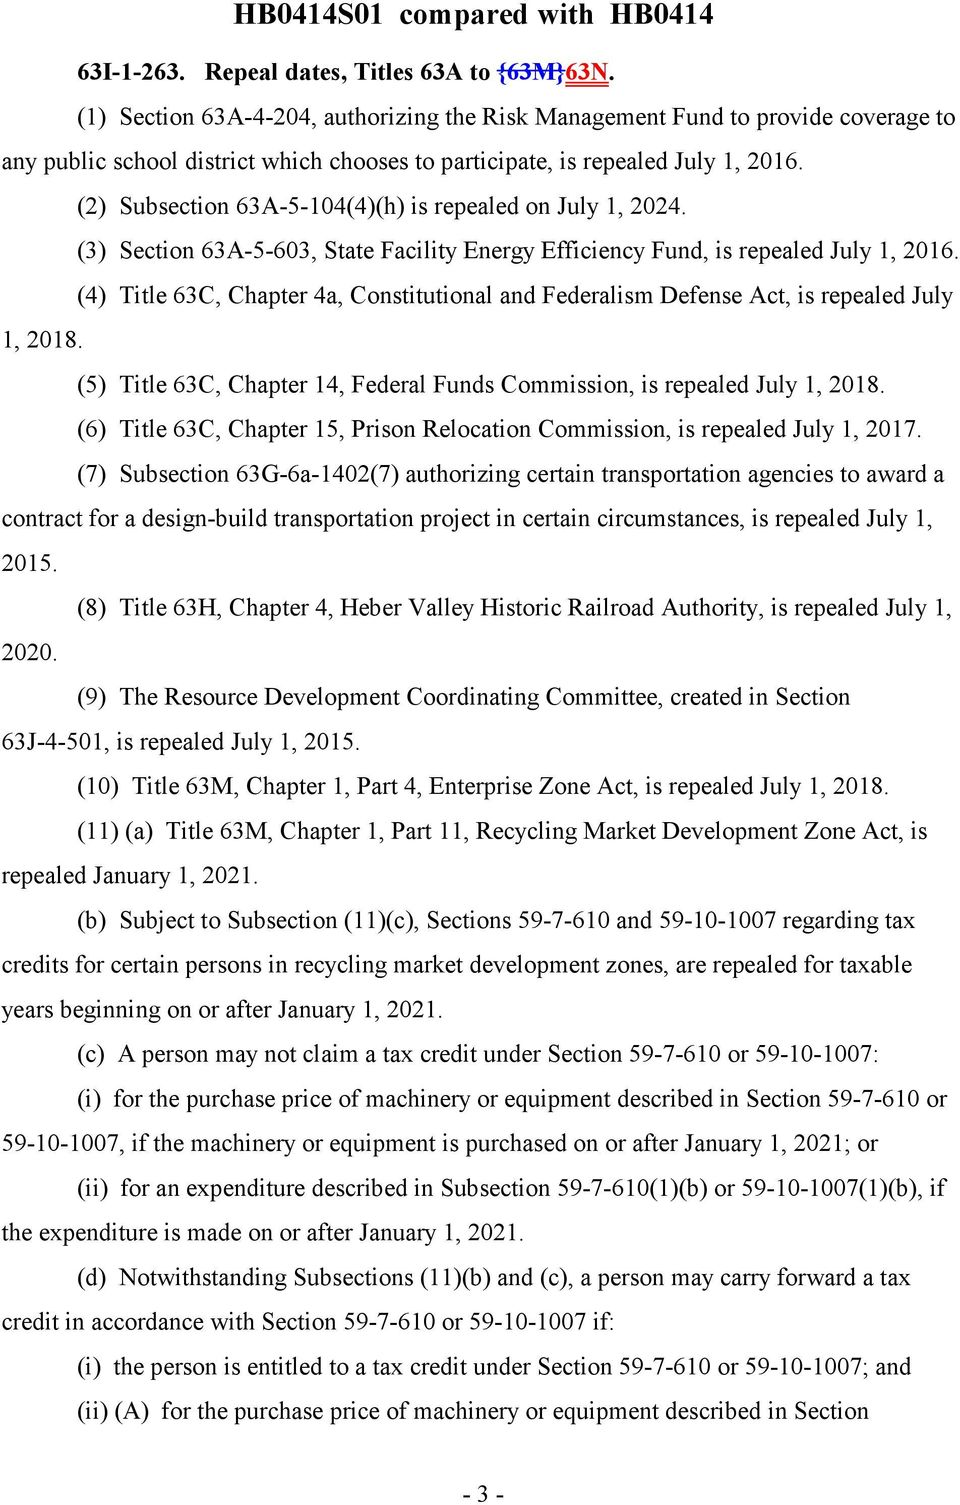 (2) Subsection 63A-5-104(4)(h) is repealed on July 1, 2024. (3) Section 63A-5-603, State Facility Energy Efficiency Fund, is repealed July 1, 2016.